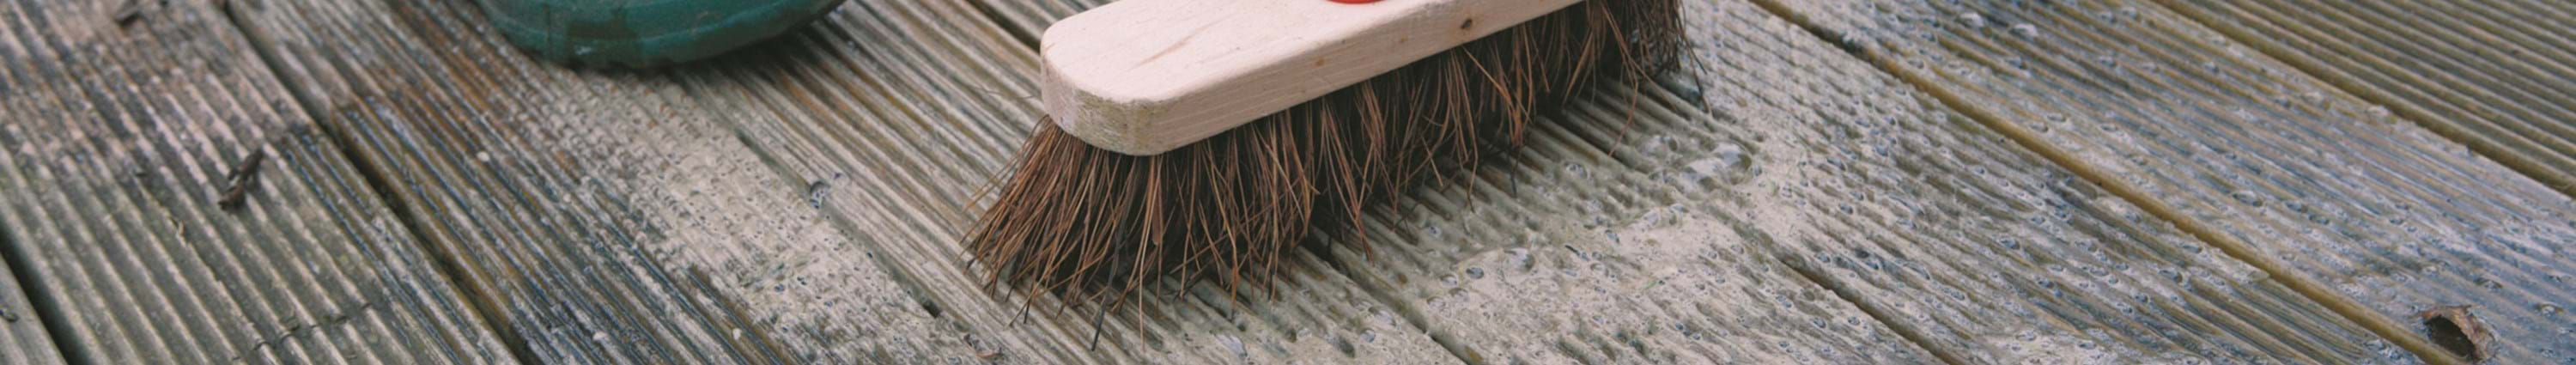 decking cleaner category.jpg